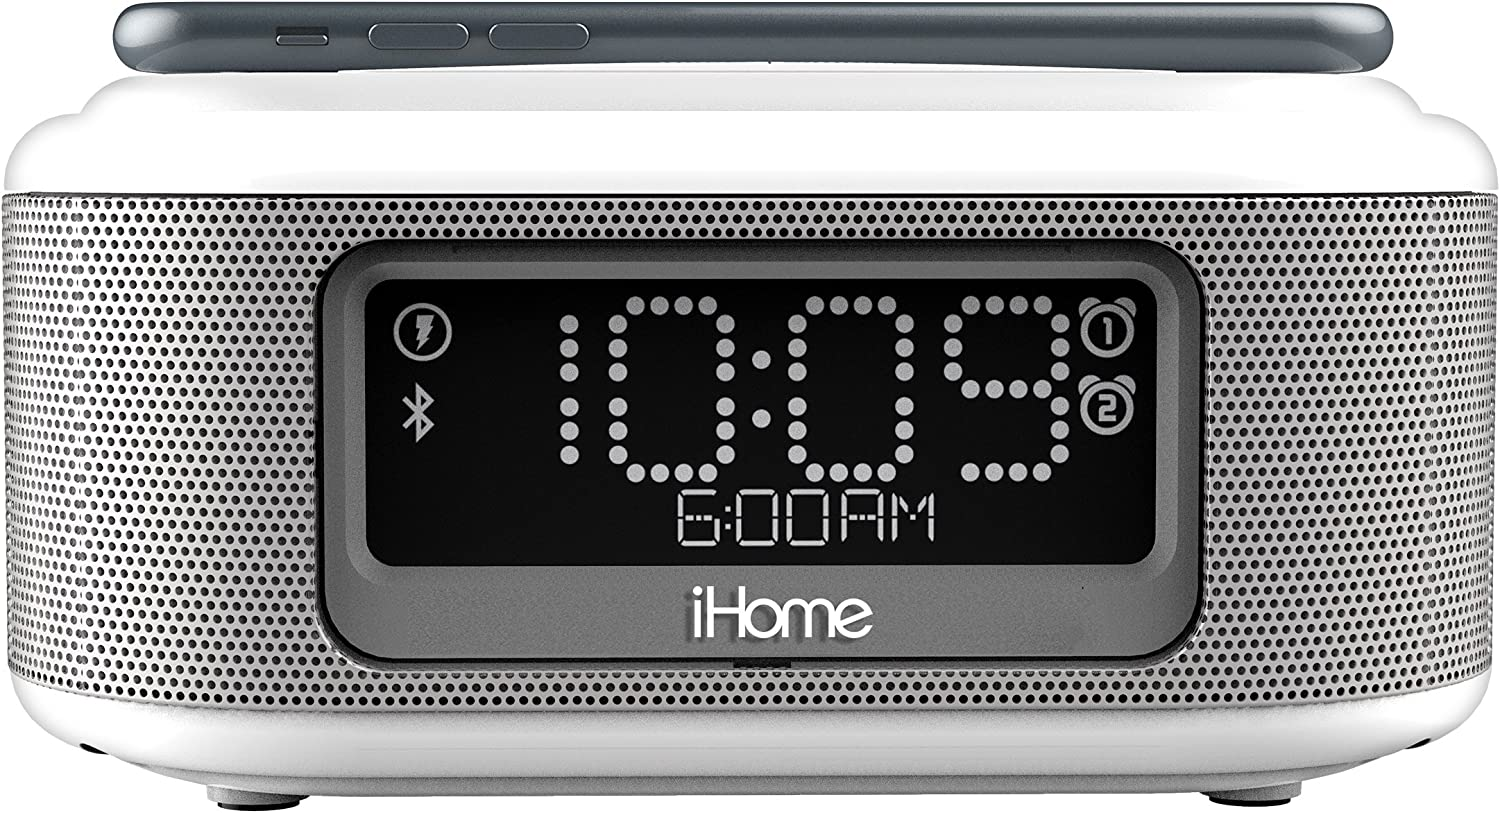 IHome iBTW23 Wireless Charging blueetooth Alarm Clock with Speakerphone & USB Charging Port For iPhone X 8 8Plus & More- White